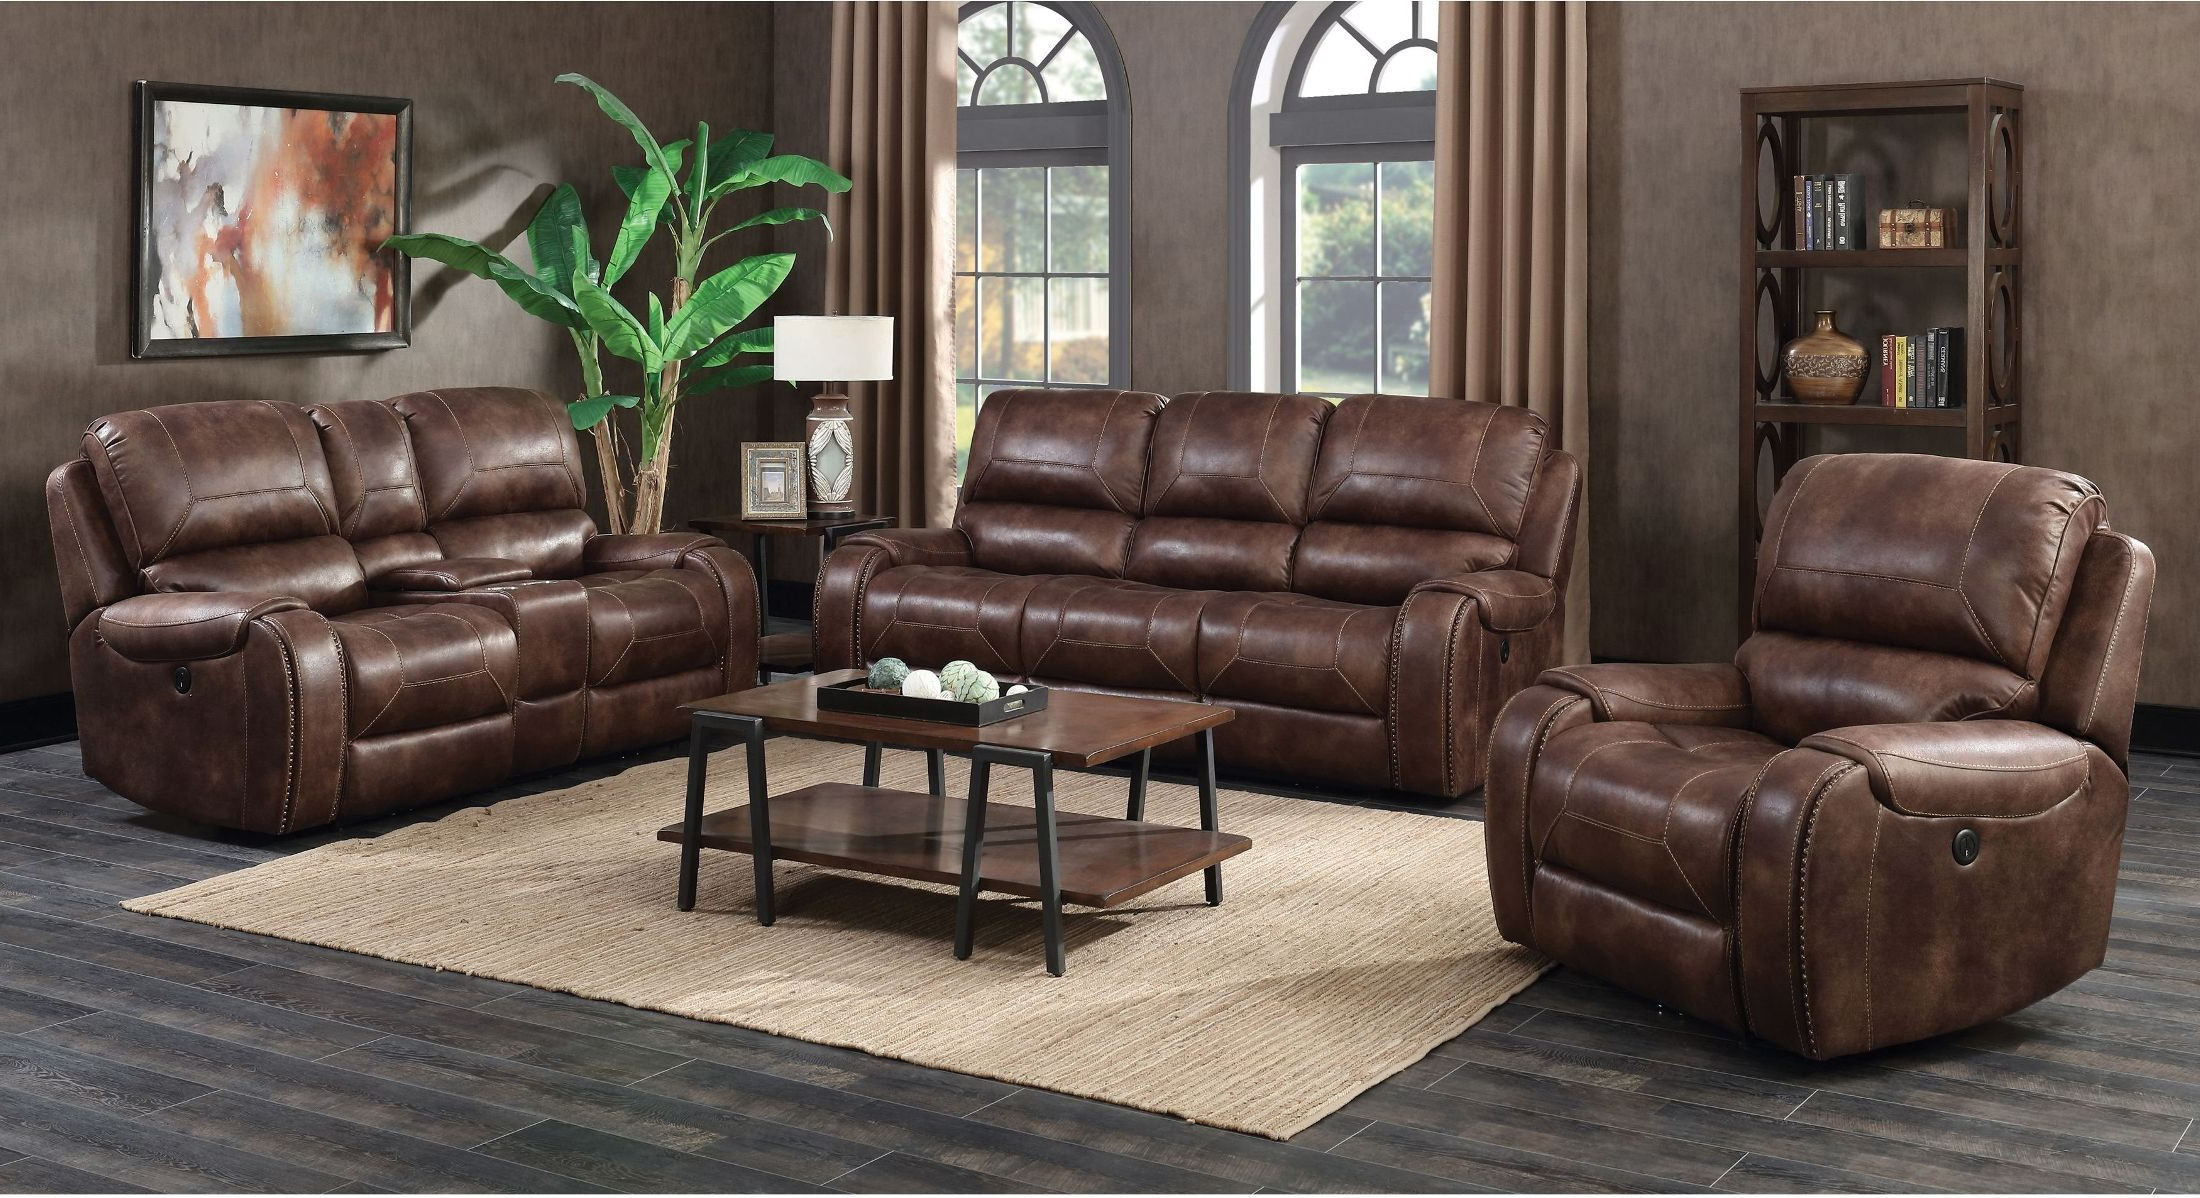 Waylon 3 Piece Power Reclining Sectionals For Preferred Jennings Waylon Mocha Power Reclining Living Room Set From Prime (View 2 of 20)